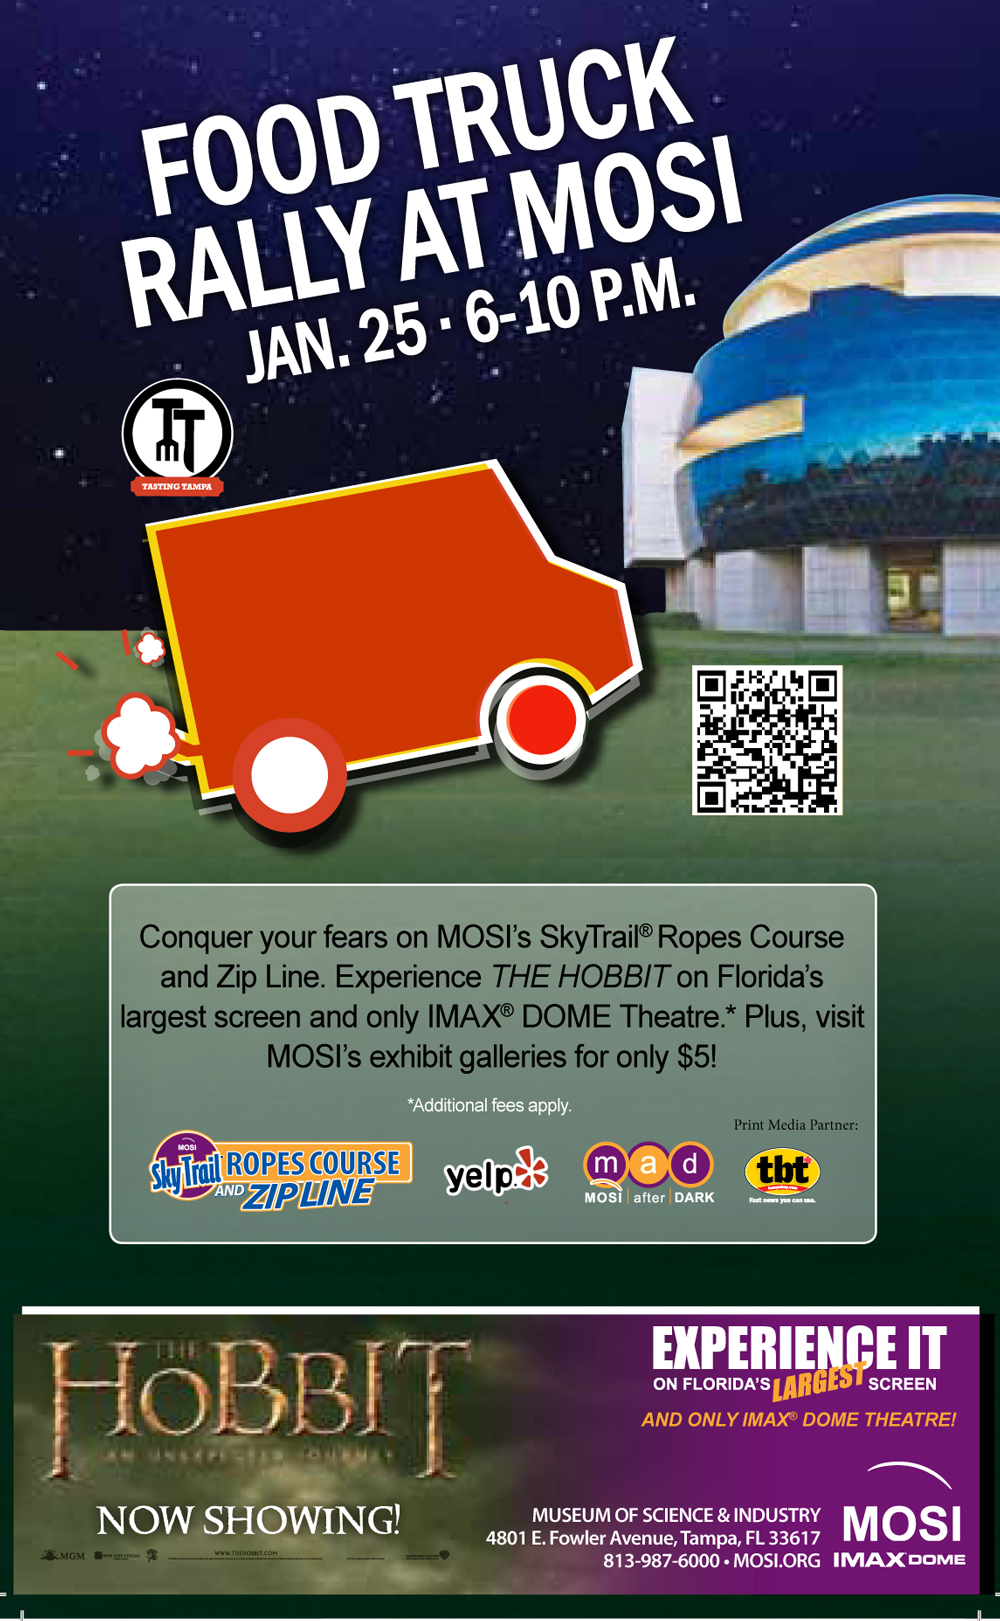 MOSI Food Truck Rally